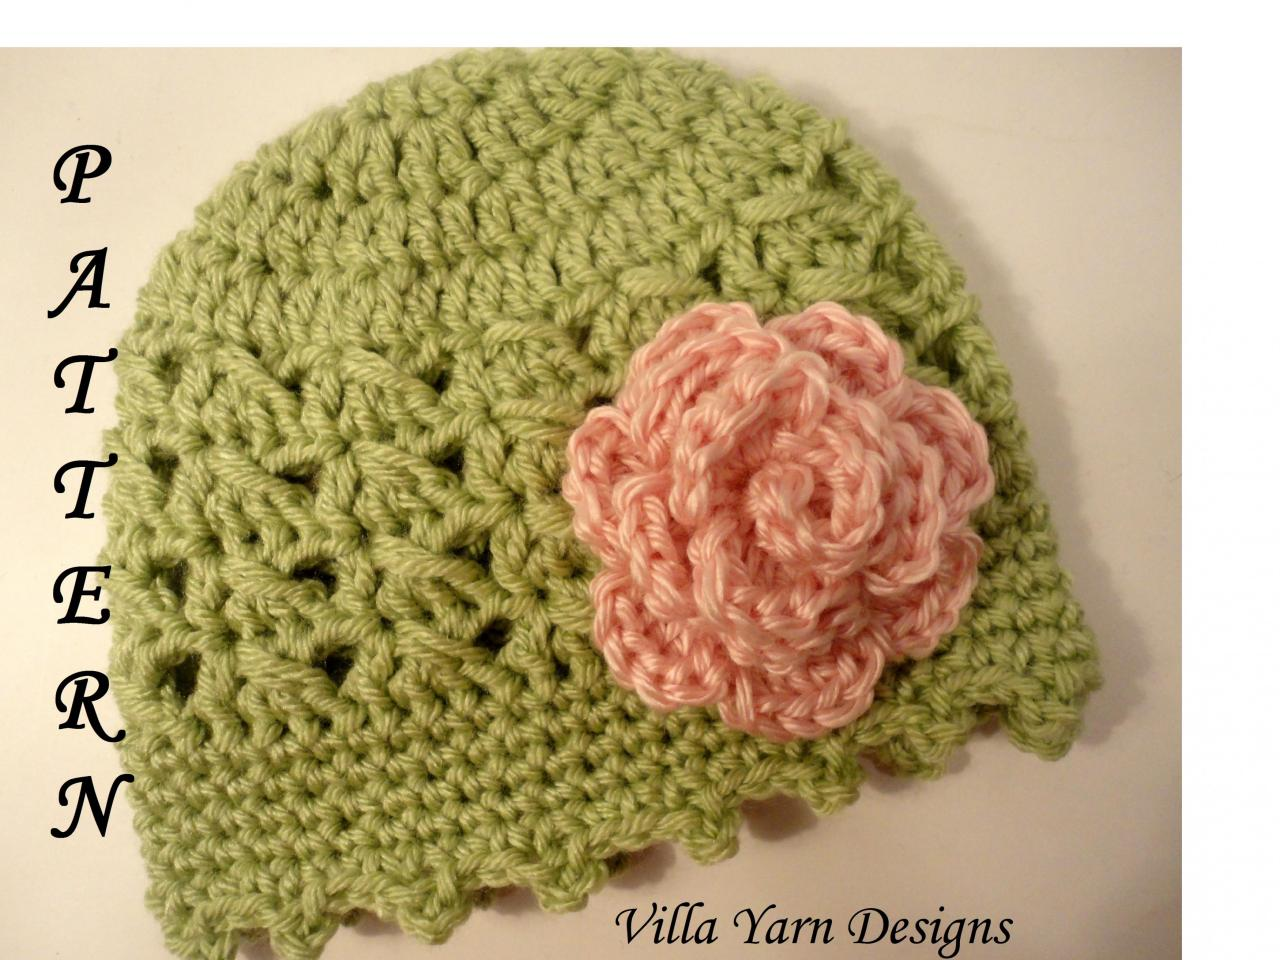 Crochet Patterns Baby Hats With Flowers : Crochet Baby Hat Pattern With Flower, Baby Girl, Newborn ...